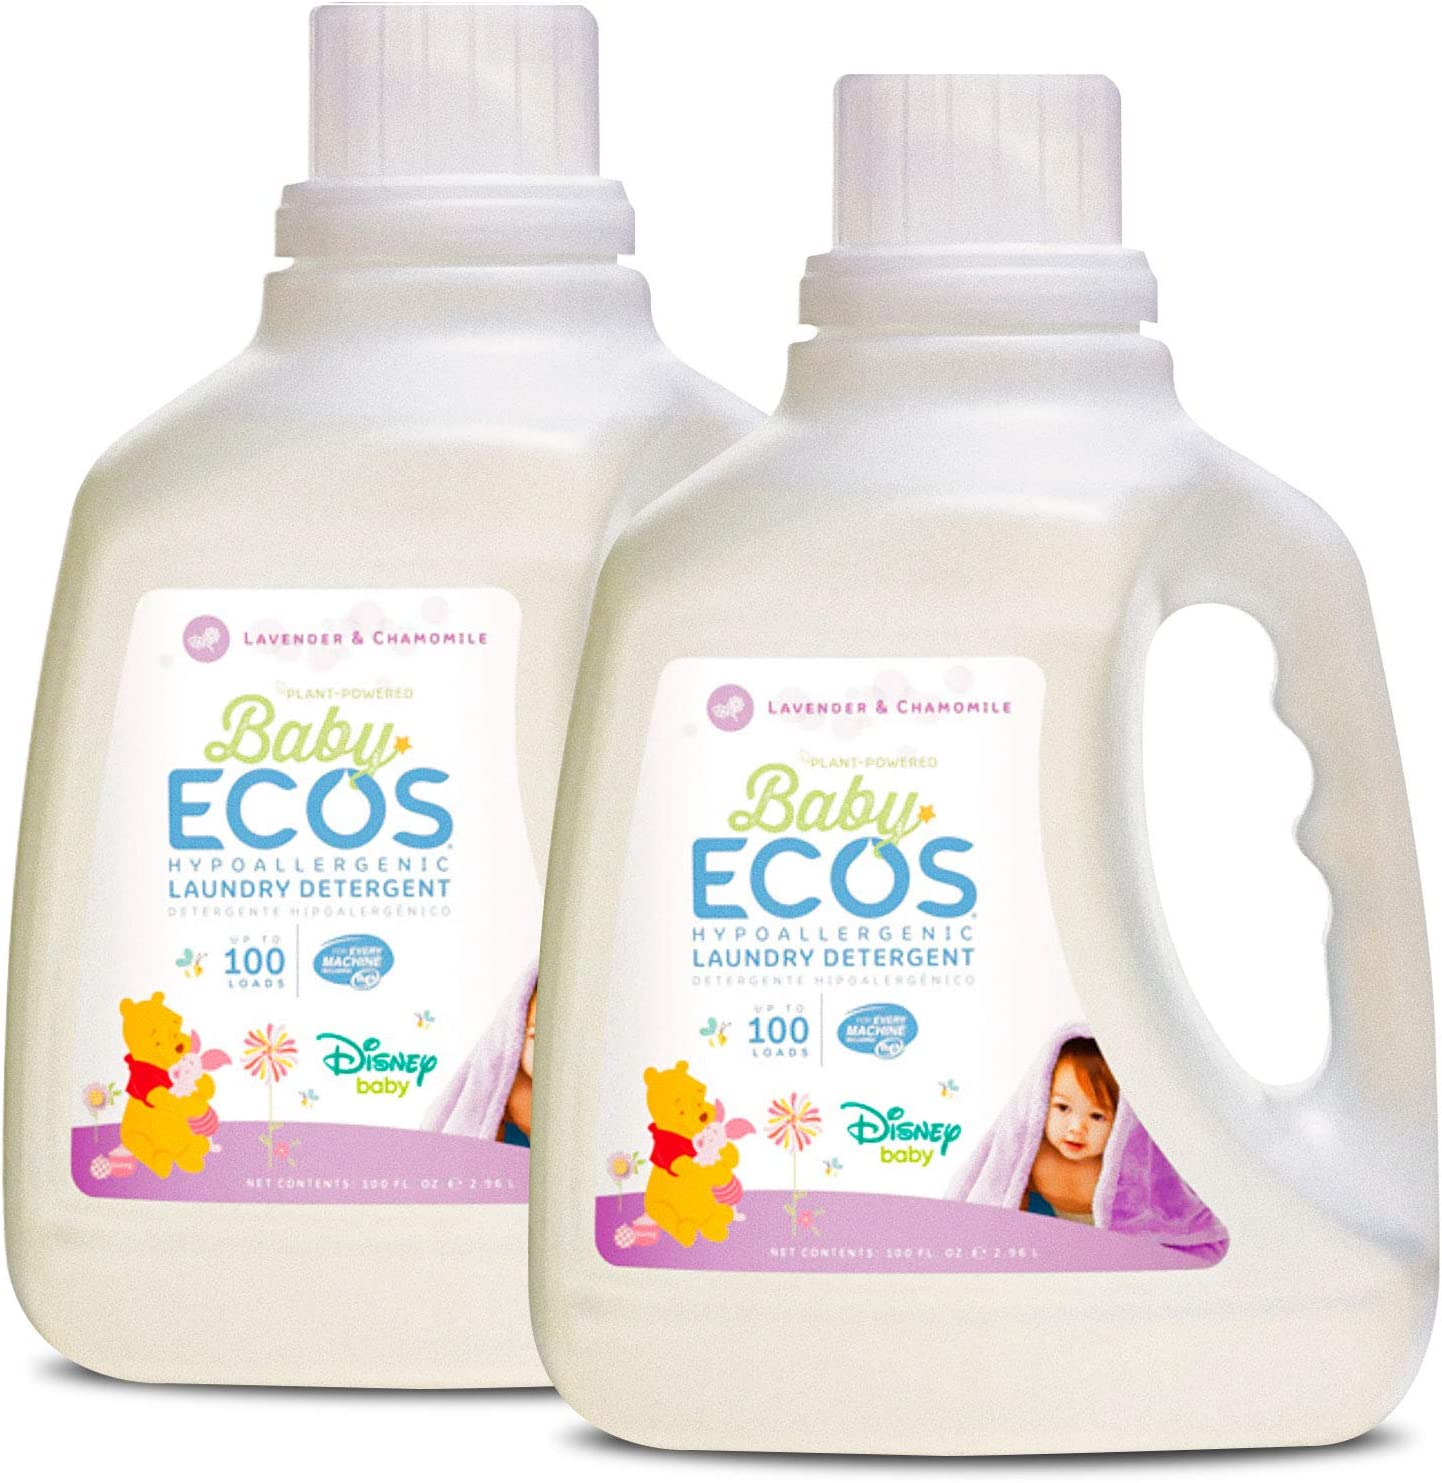 Earth Friendly Products Baby Ecos Disney Laundry Detergent,Lavender and Chamomile,100 Fl Oz, (Pack of 2)